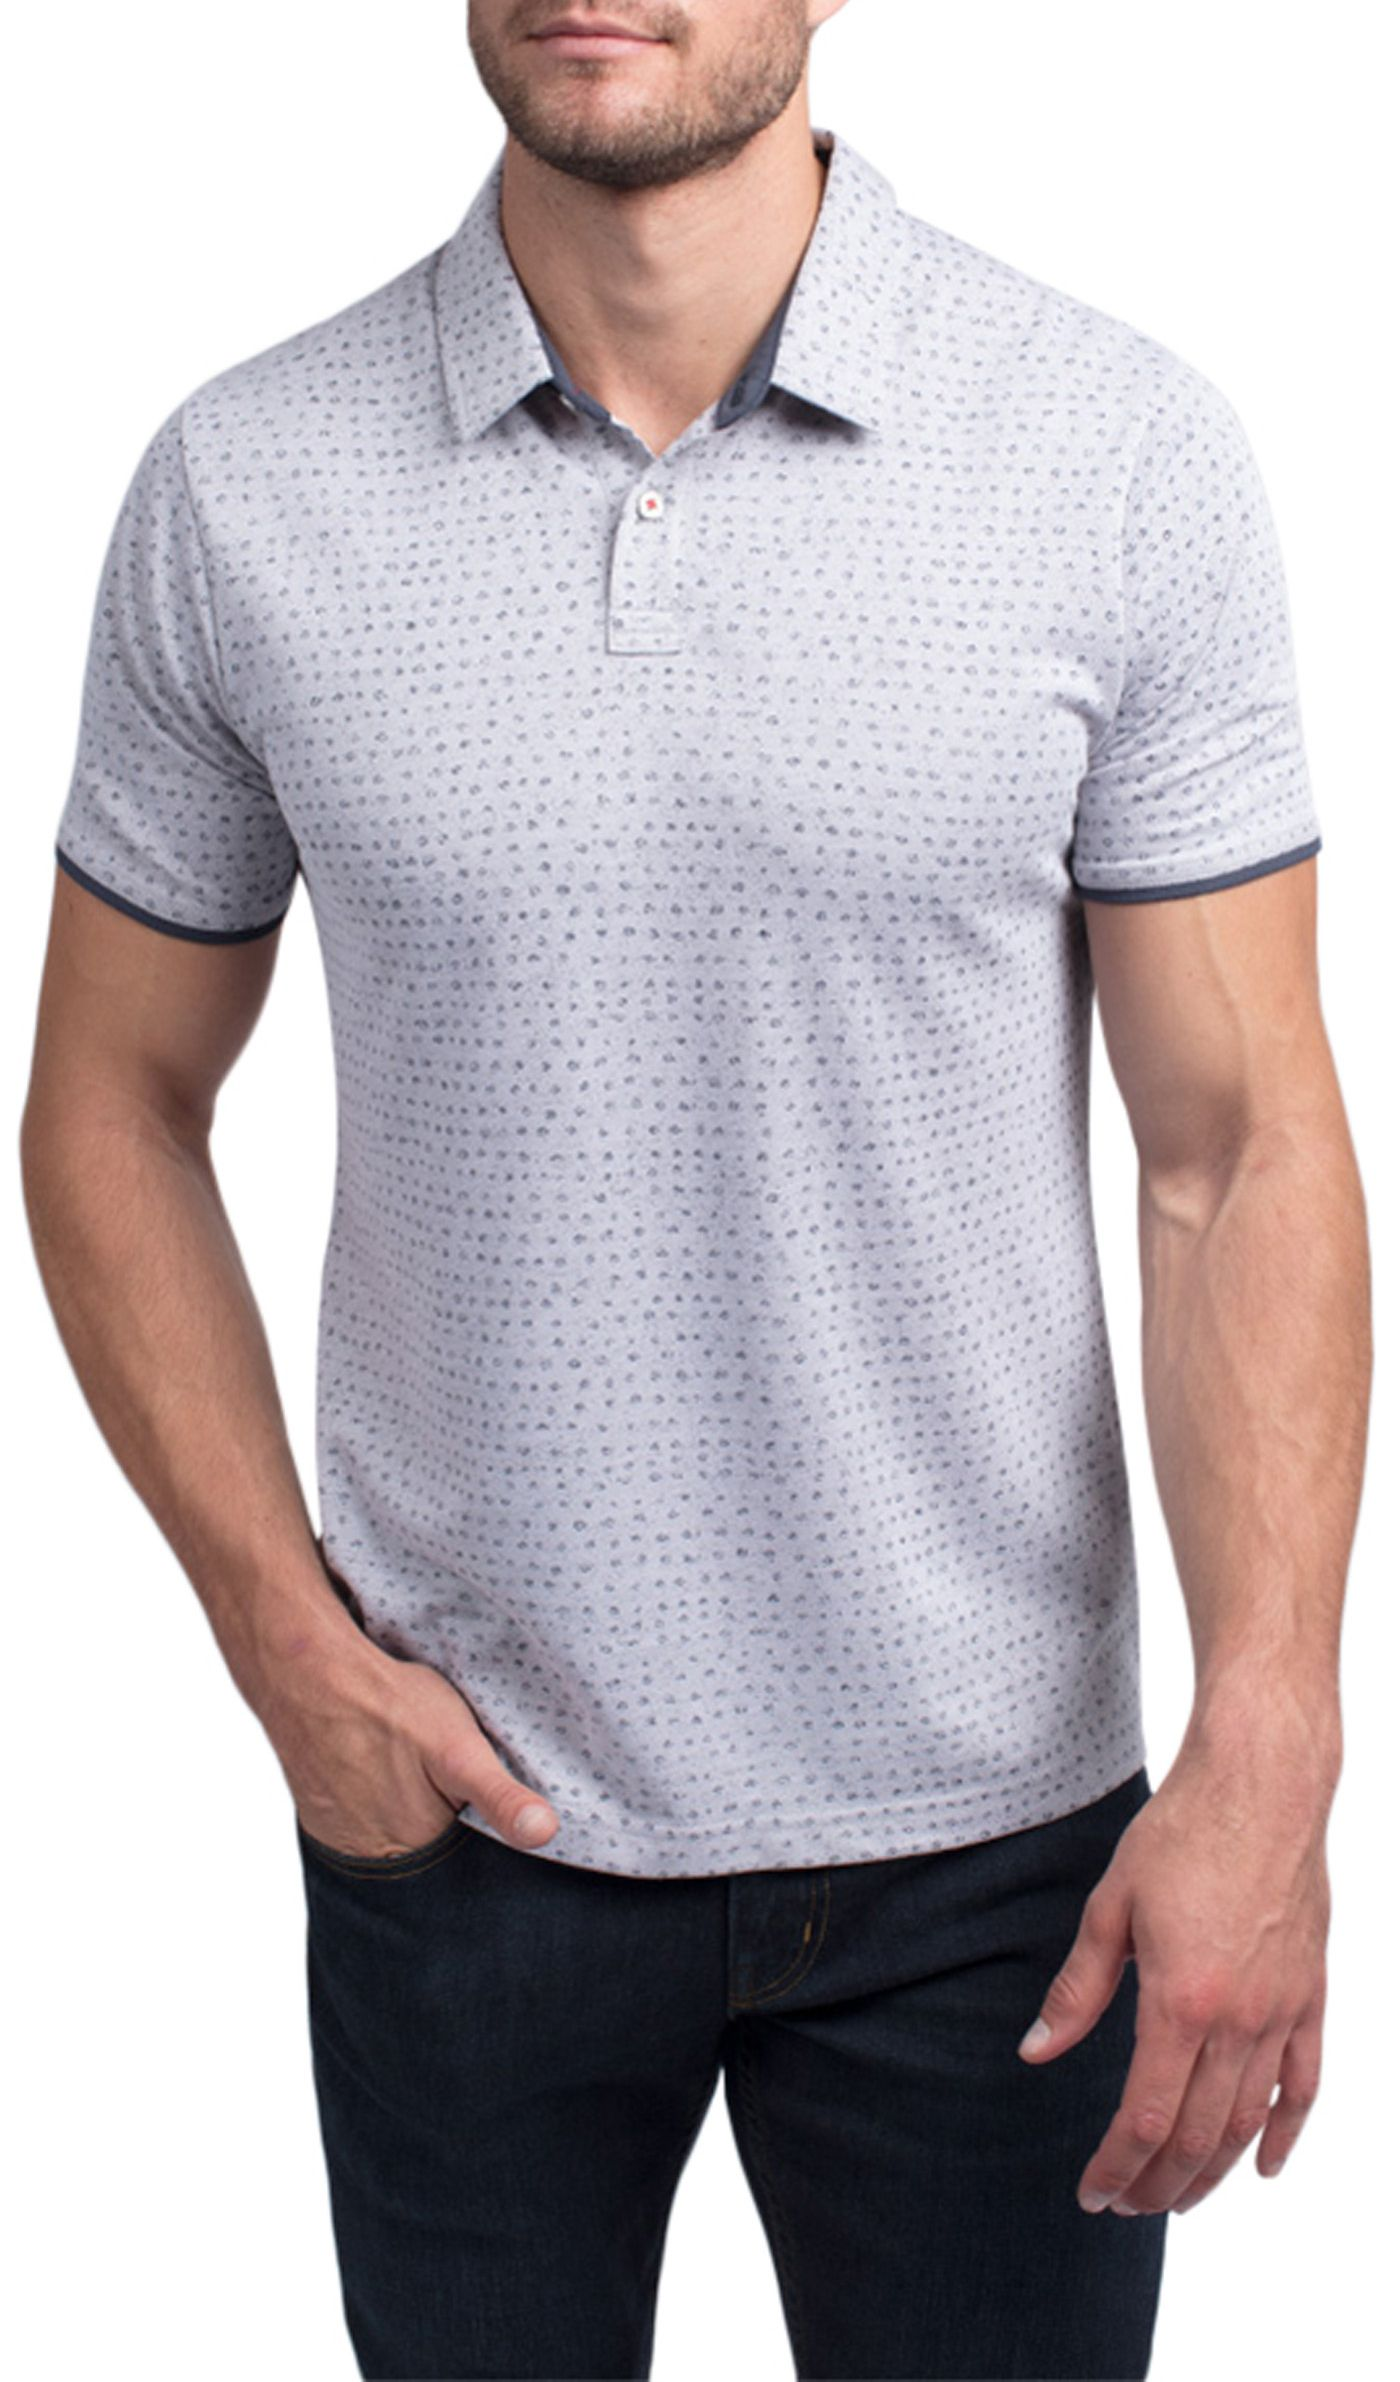 TravisMathew Men's Nailed It Golf Polo